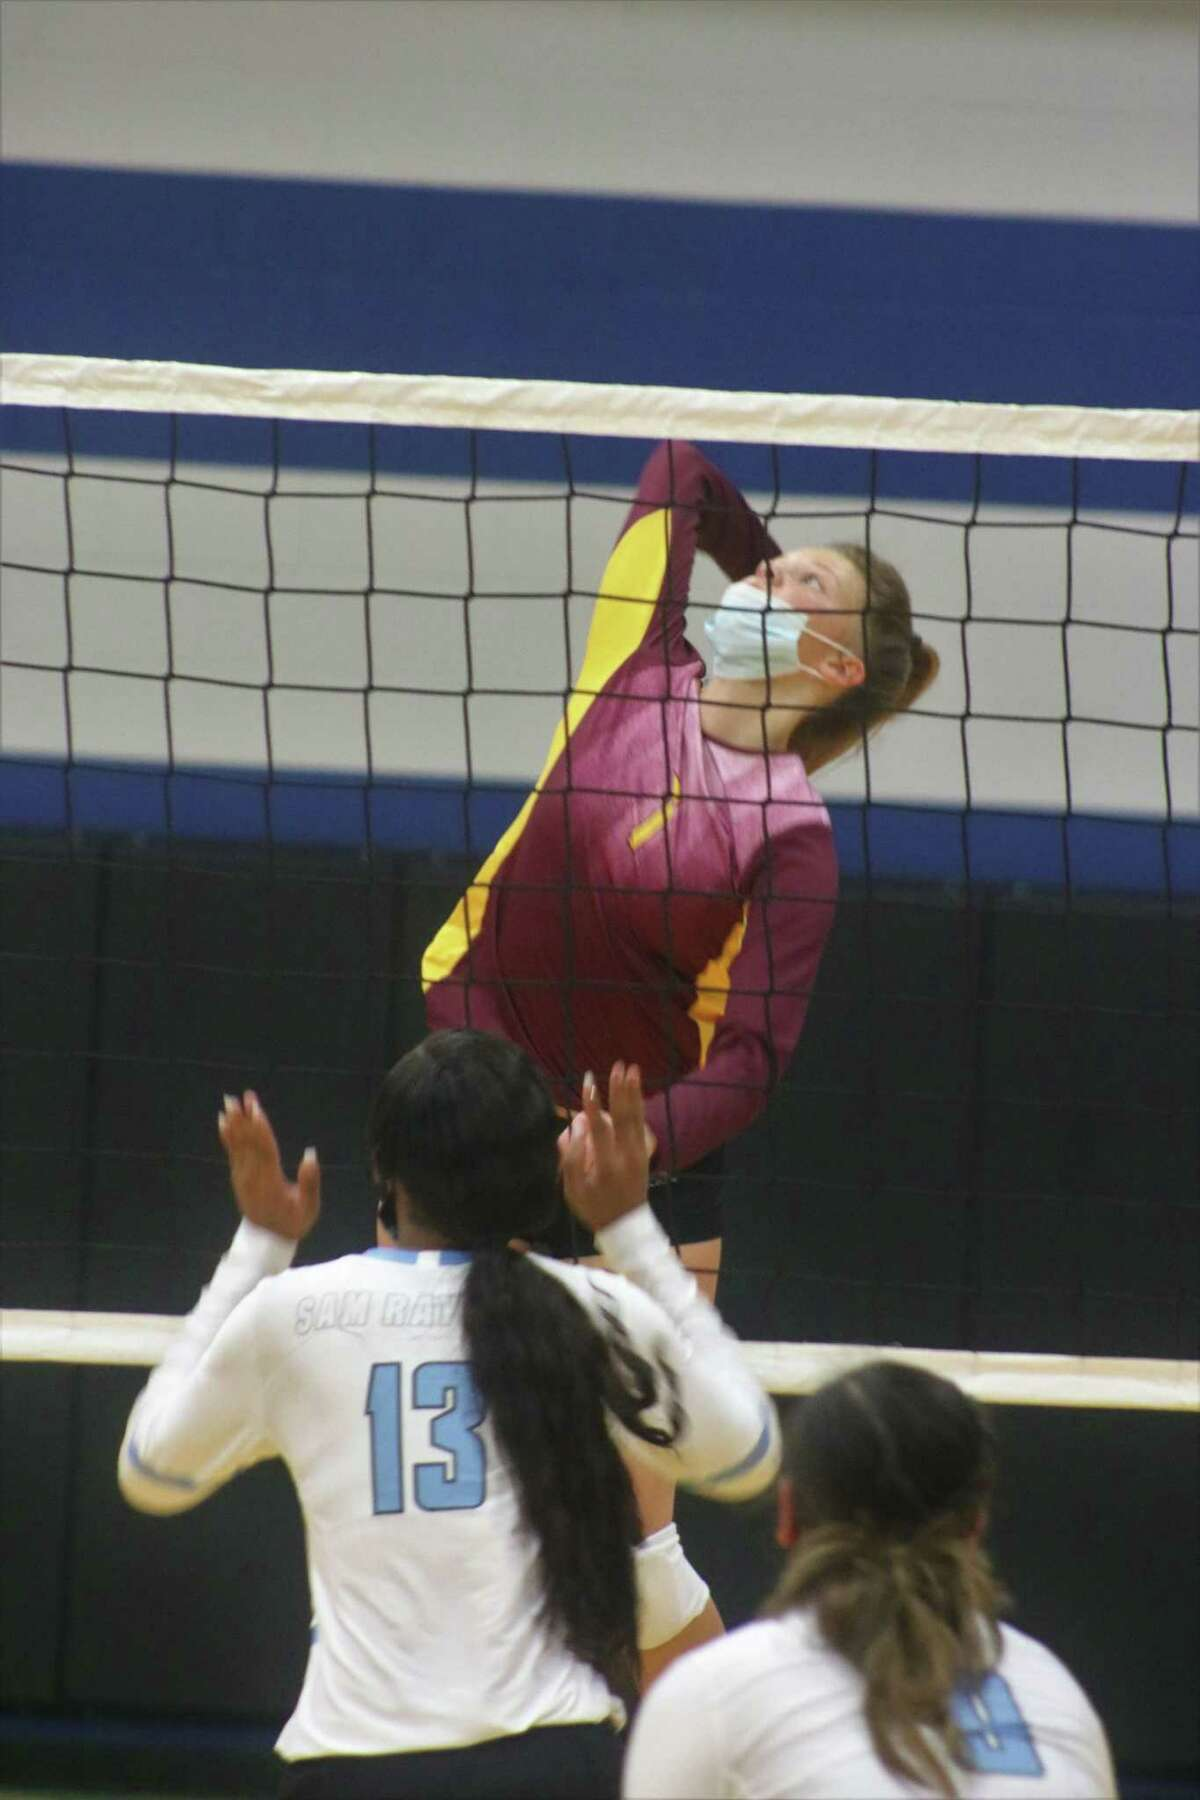 Tatum Busch leaps up, looking for a chance to add to her 14-kill count Tuesday night in the Rayburn gym.